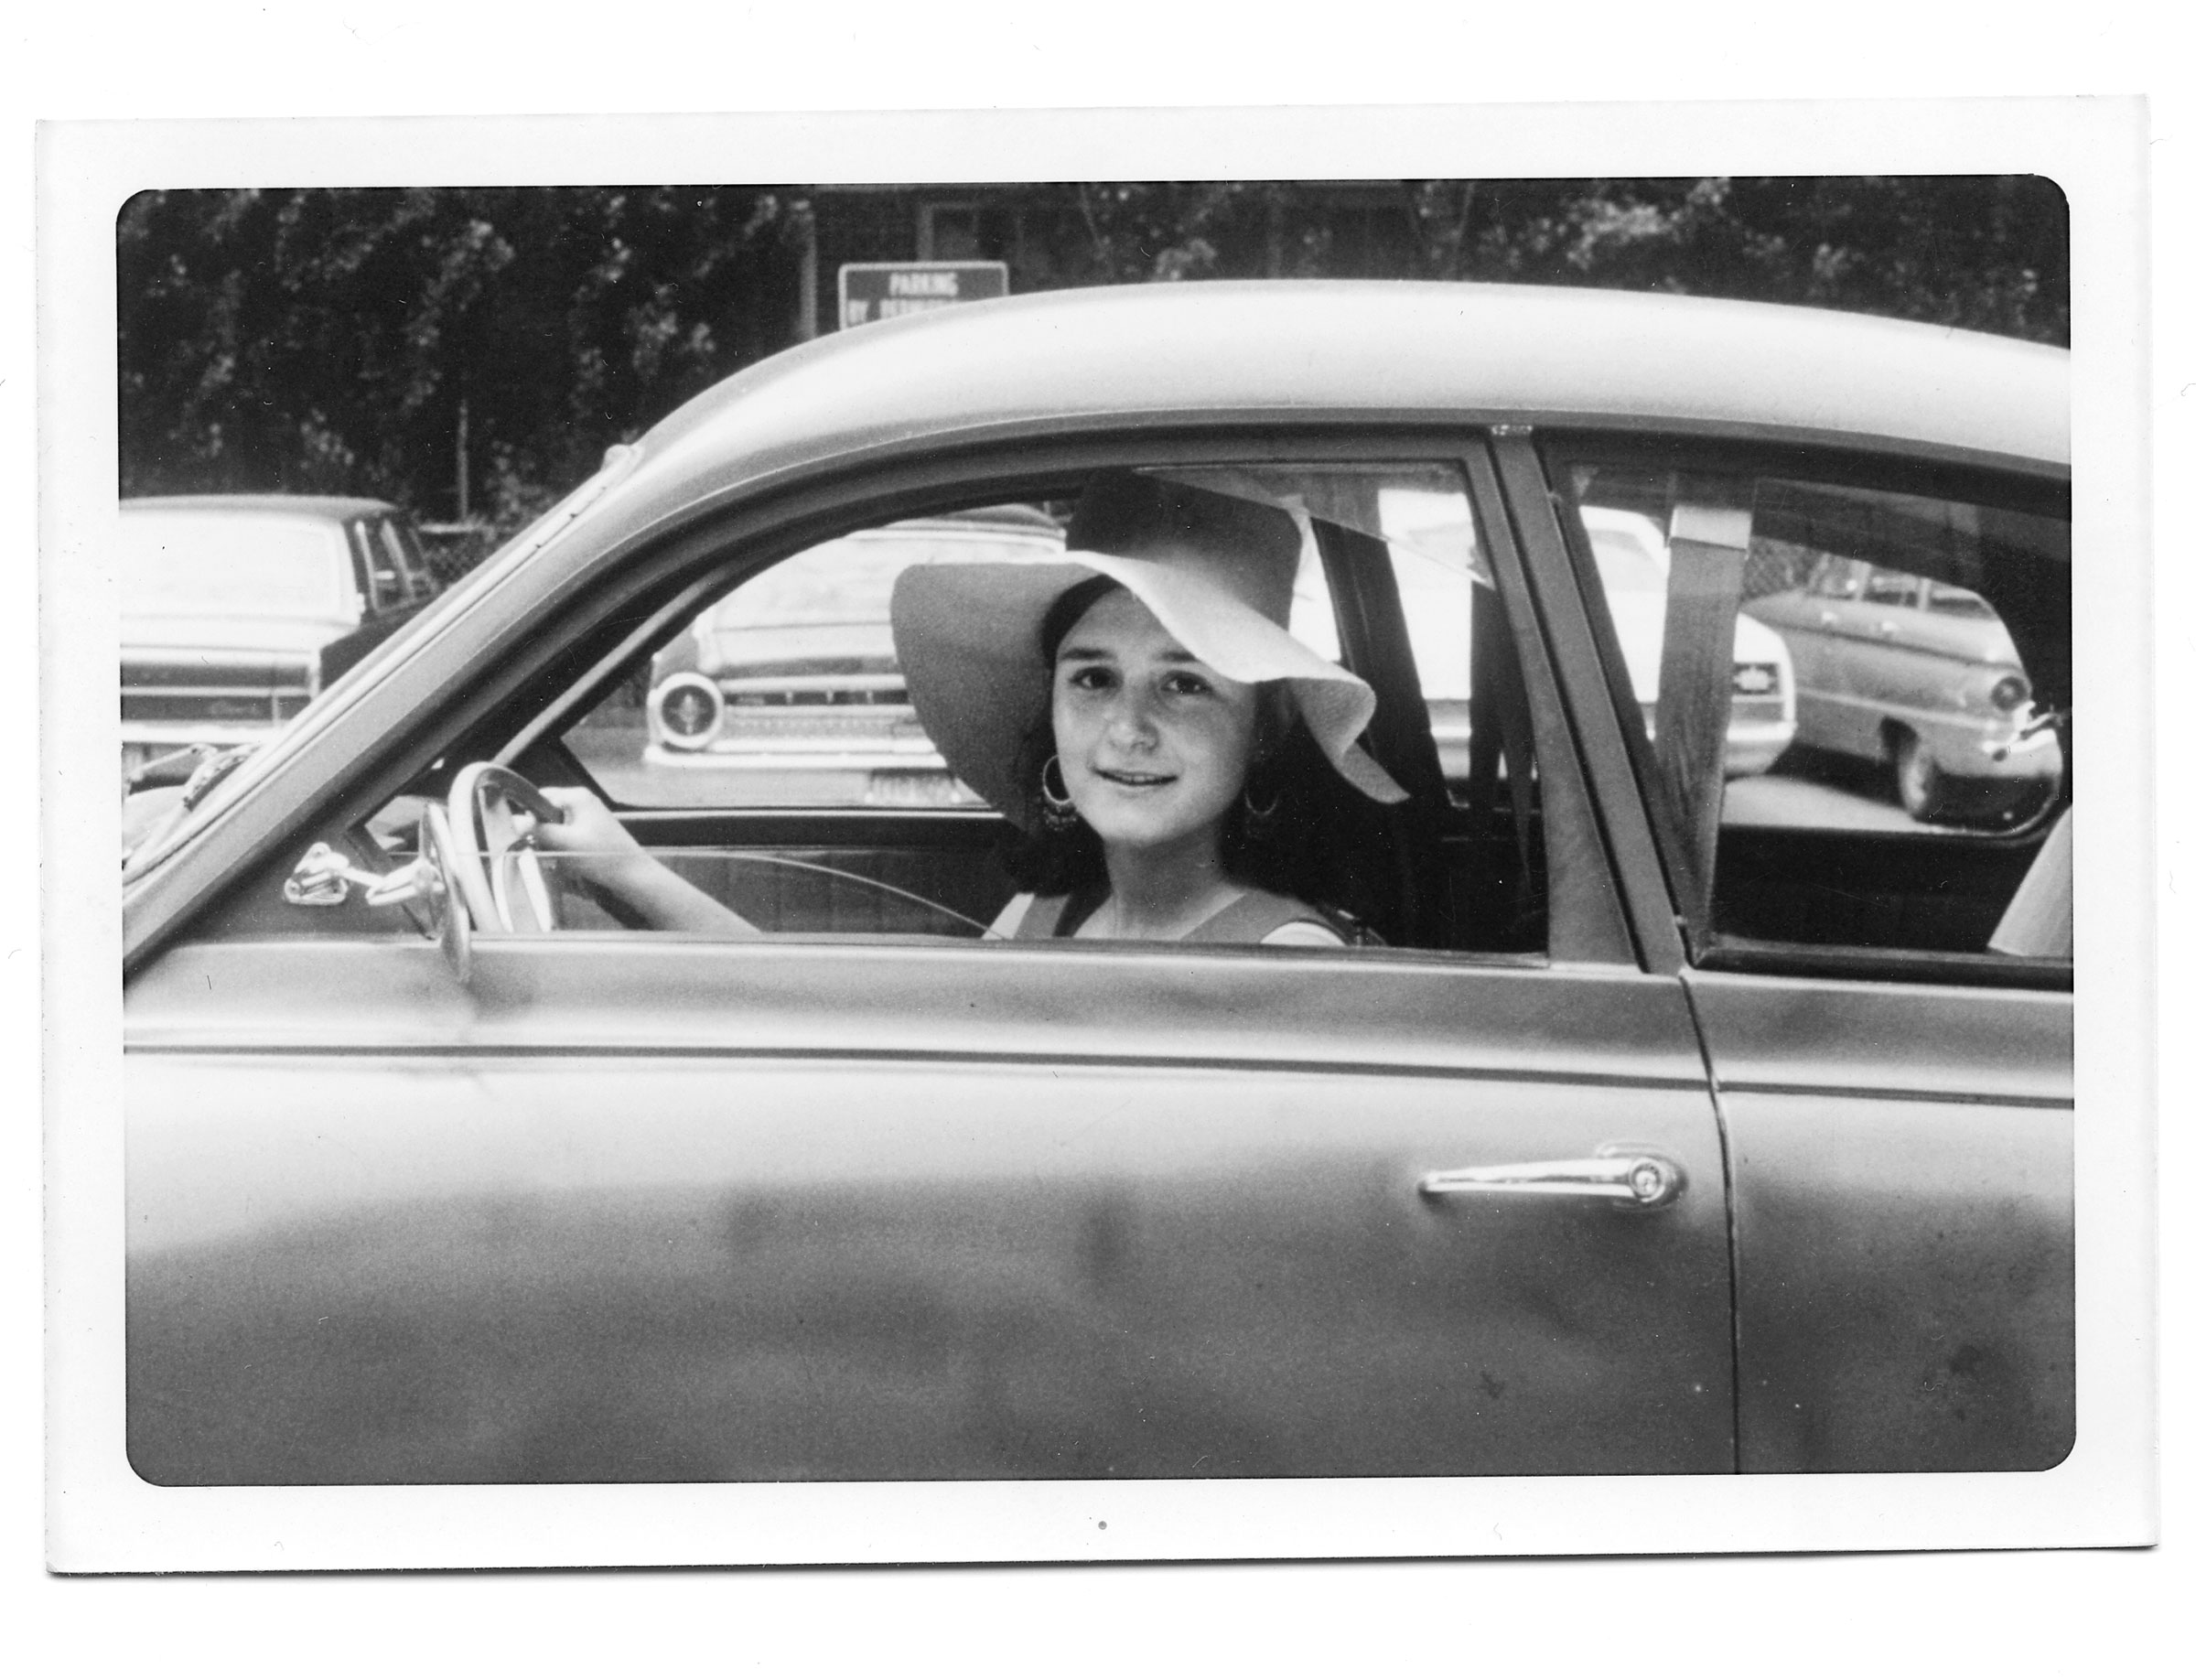 Sherry Turkle in her roadster at Radcliffe College graduation, June 1970